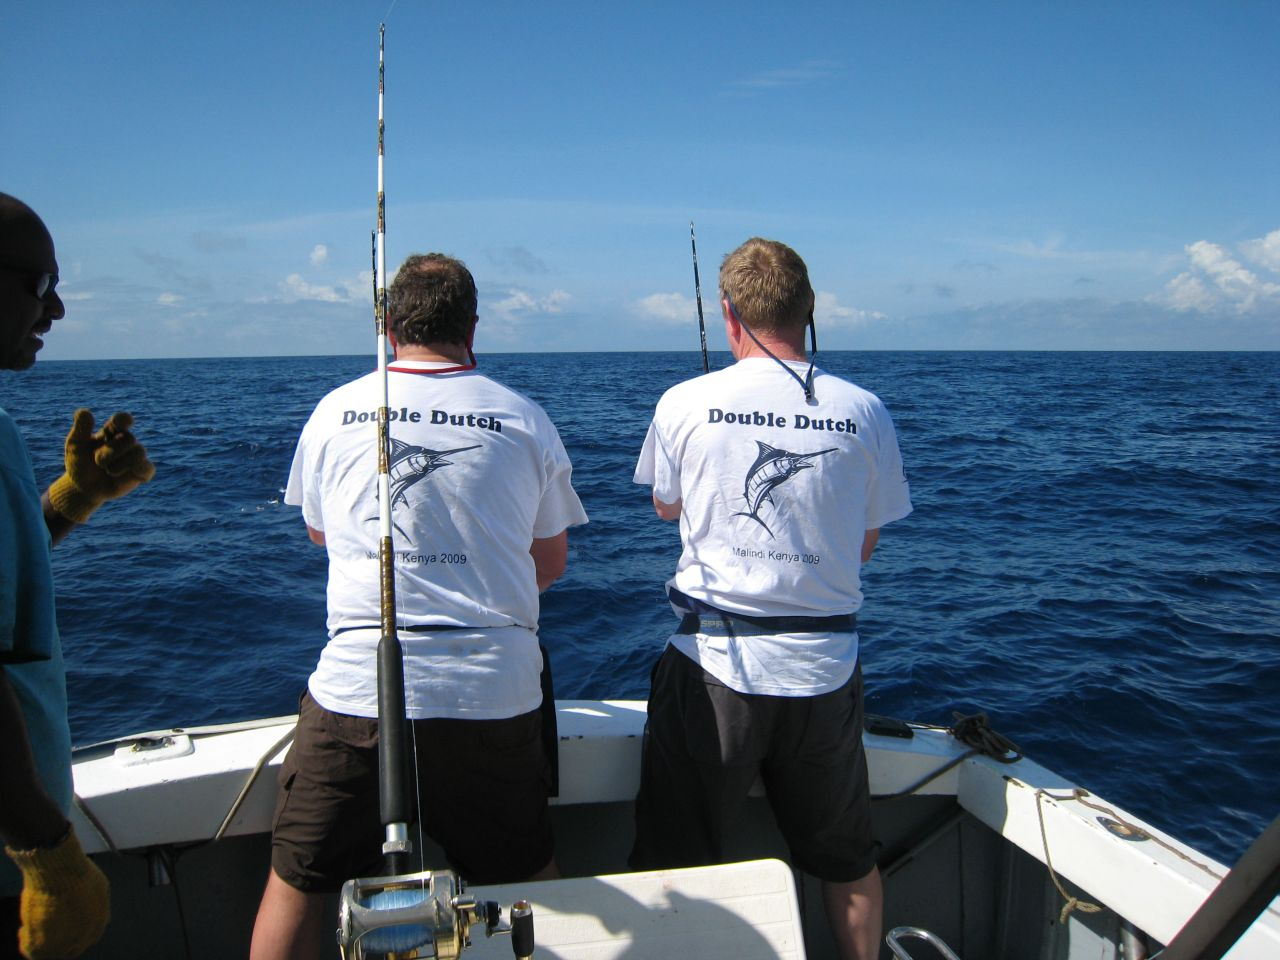 Custom t shirts for double dutch fishing team in kenya for Fishing team shirts